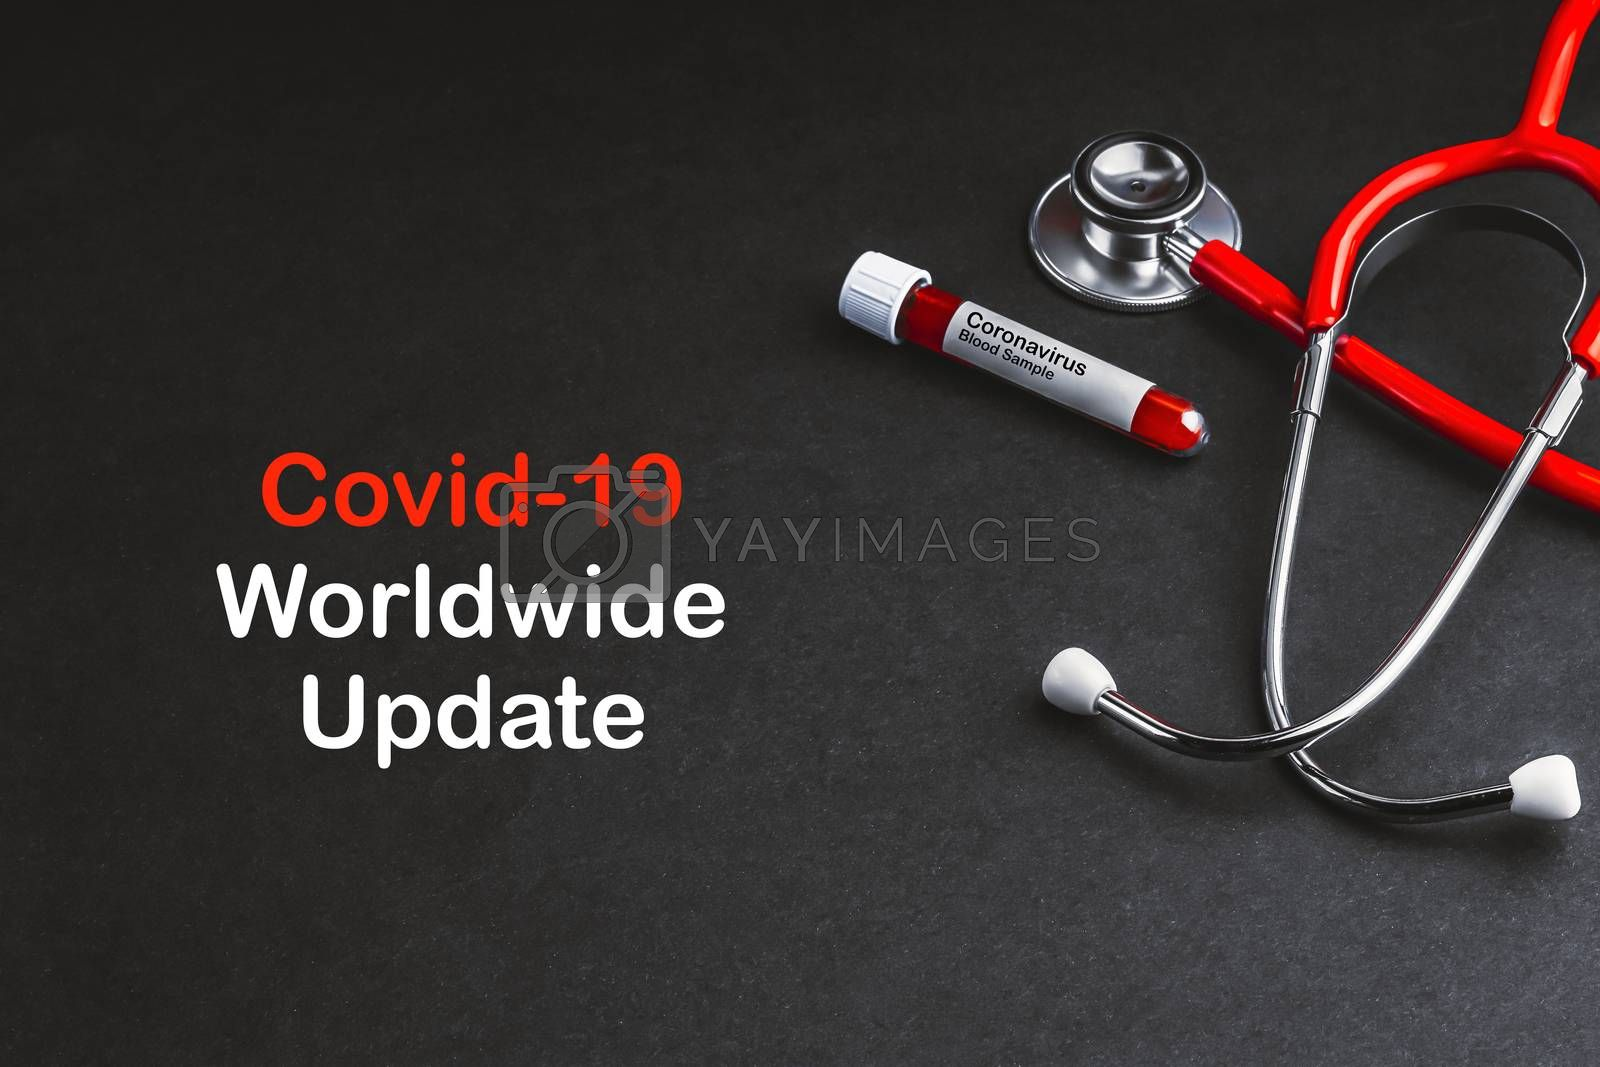 COVID-19 WORLDWIDE UPDATE  text with stethoscope and blood sample vacuum tube on black background. Covid or Coronavirus Concept